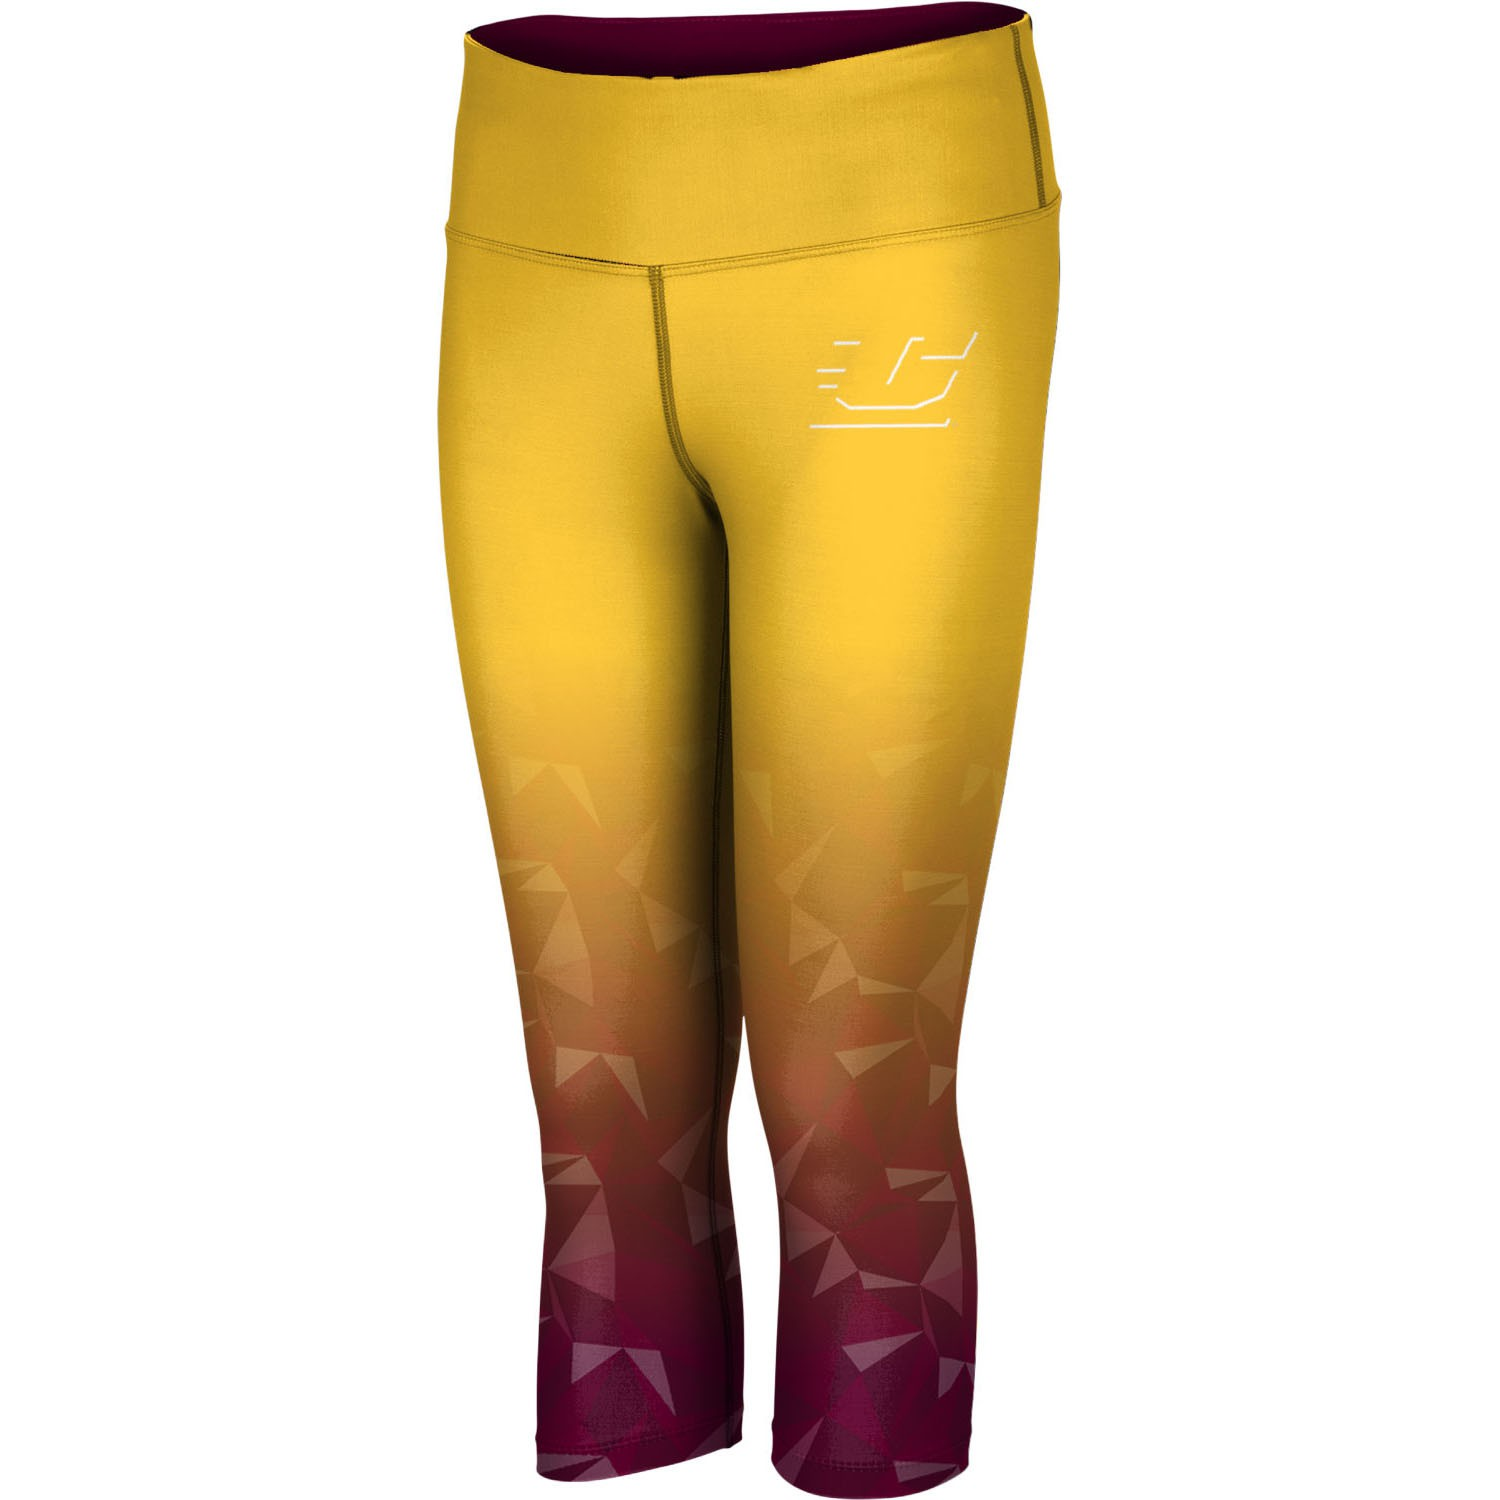 ProSphere Women's Central Michigan University Maya Capri Length Tight